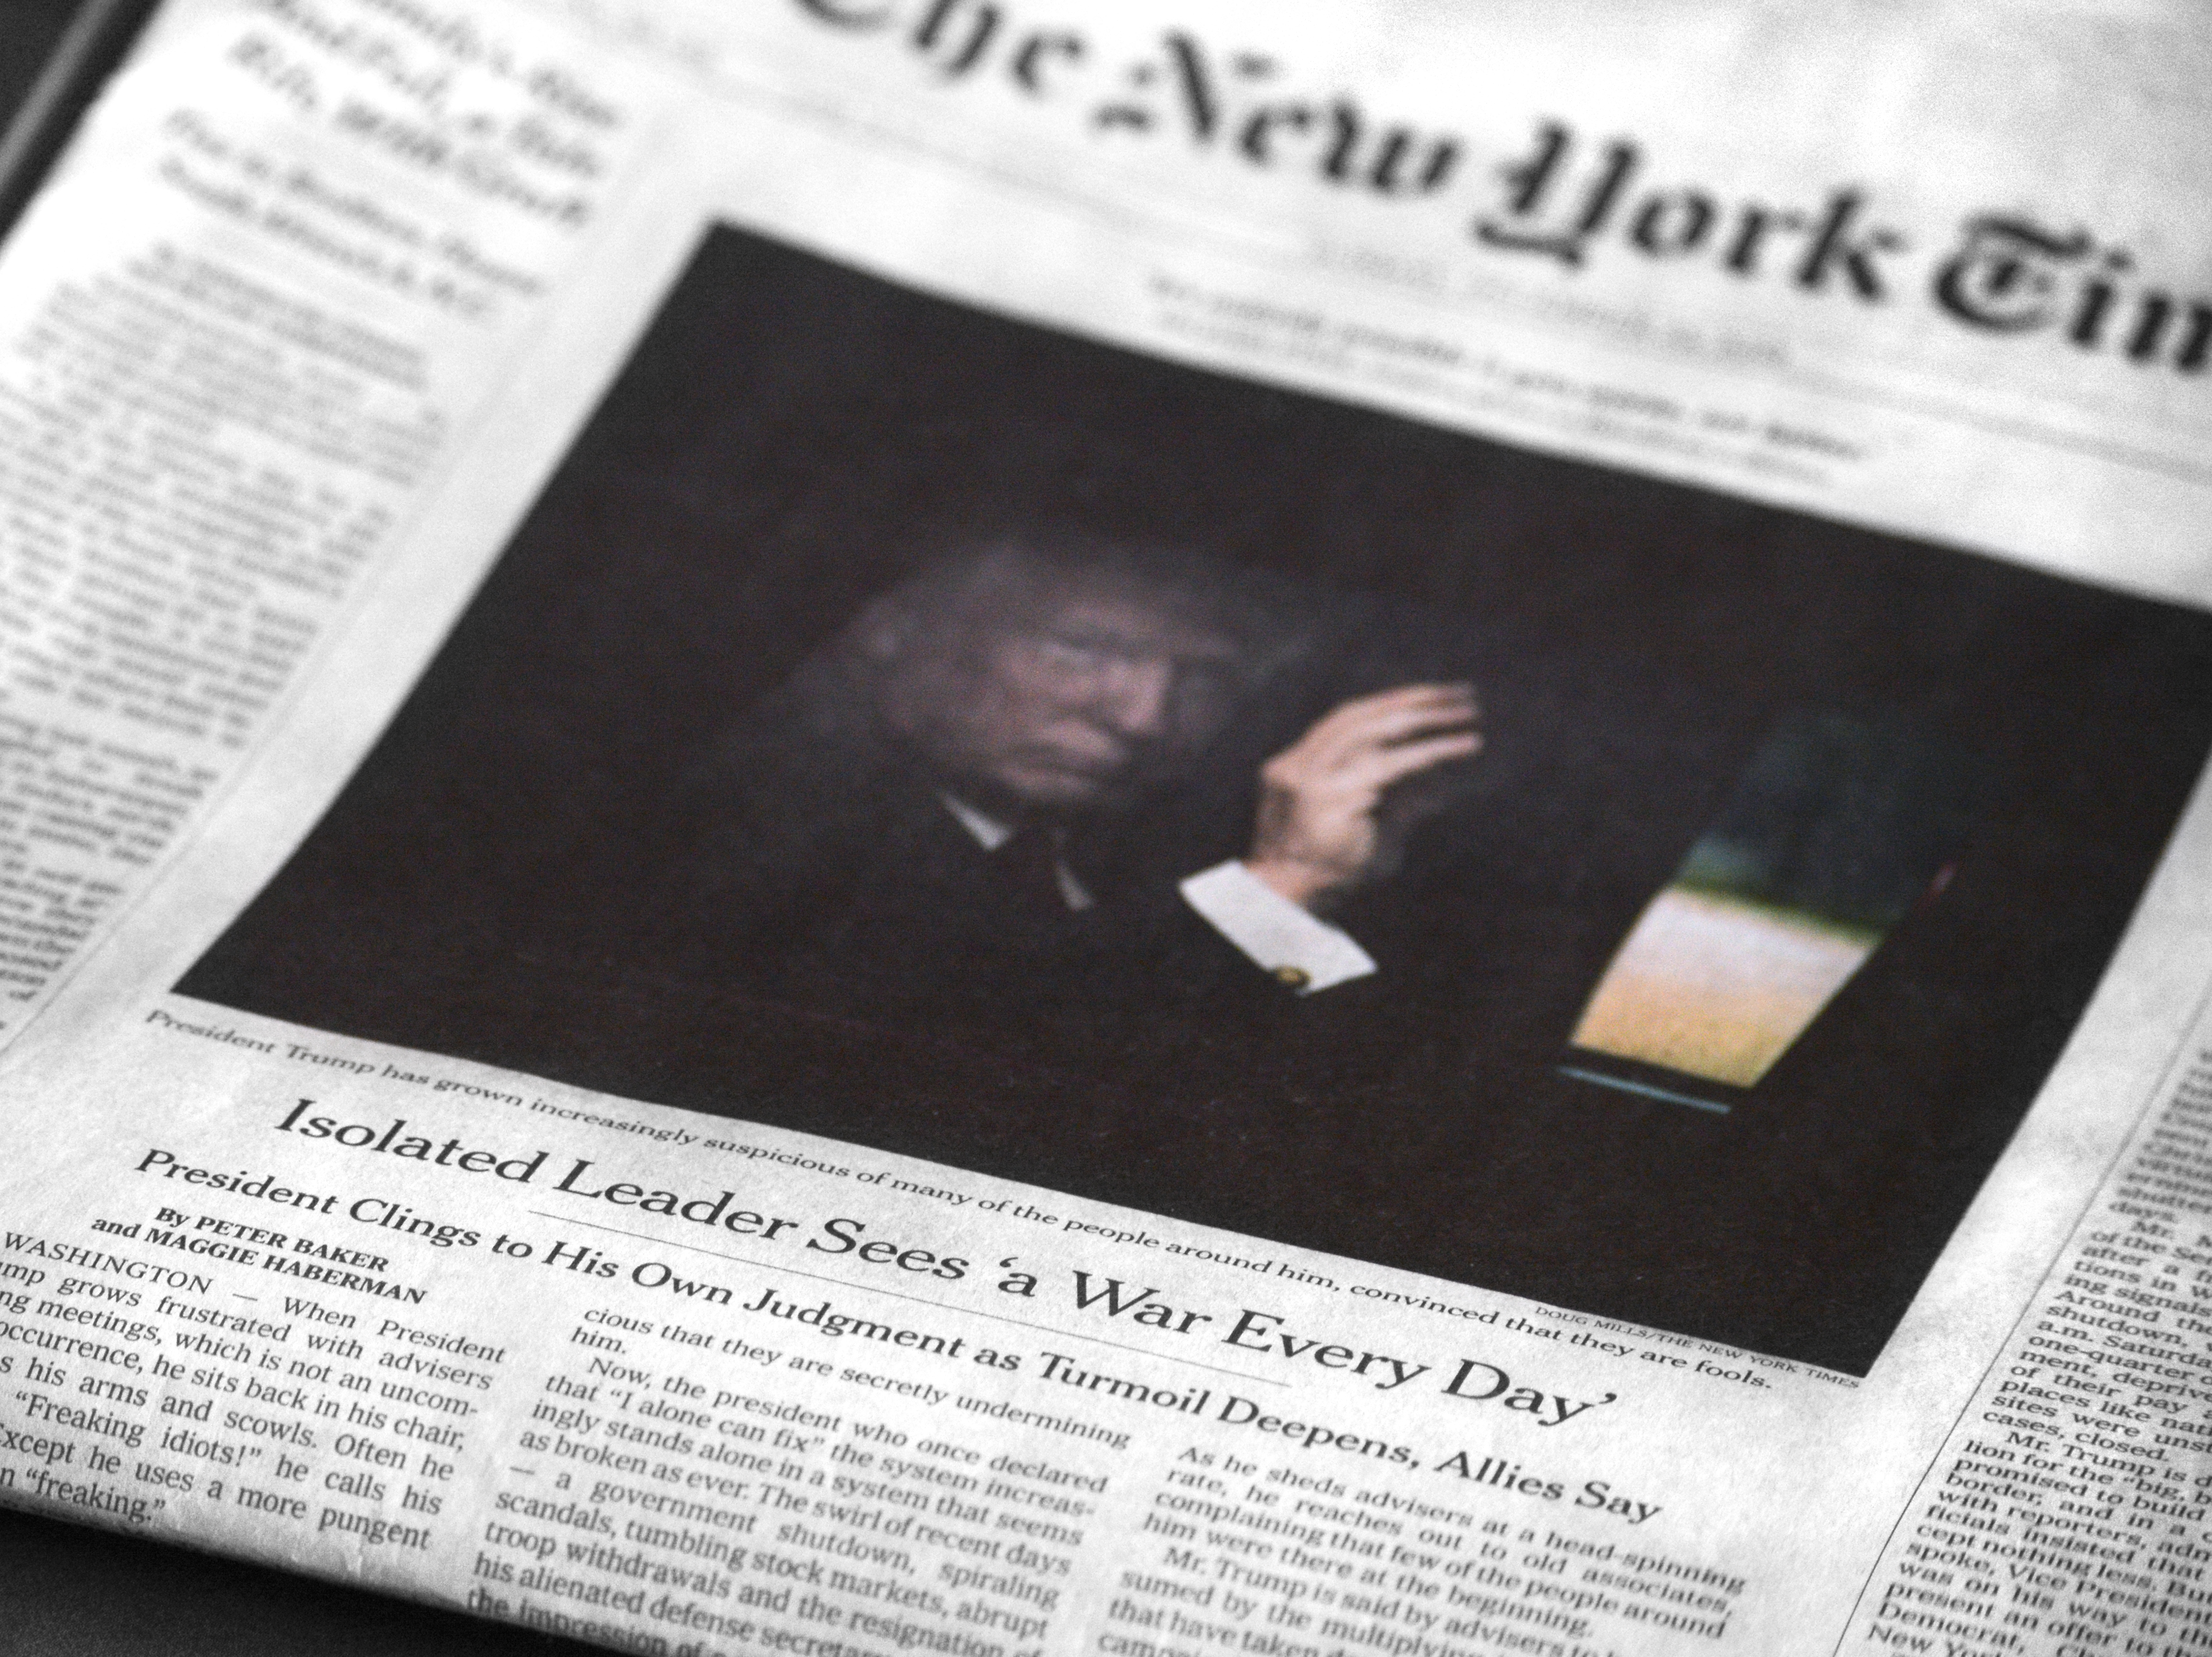 Trump's baffling, self-defeating attack on the New York Times